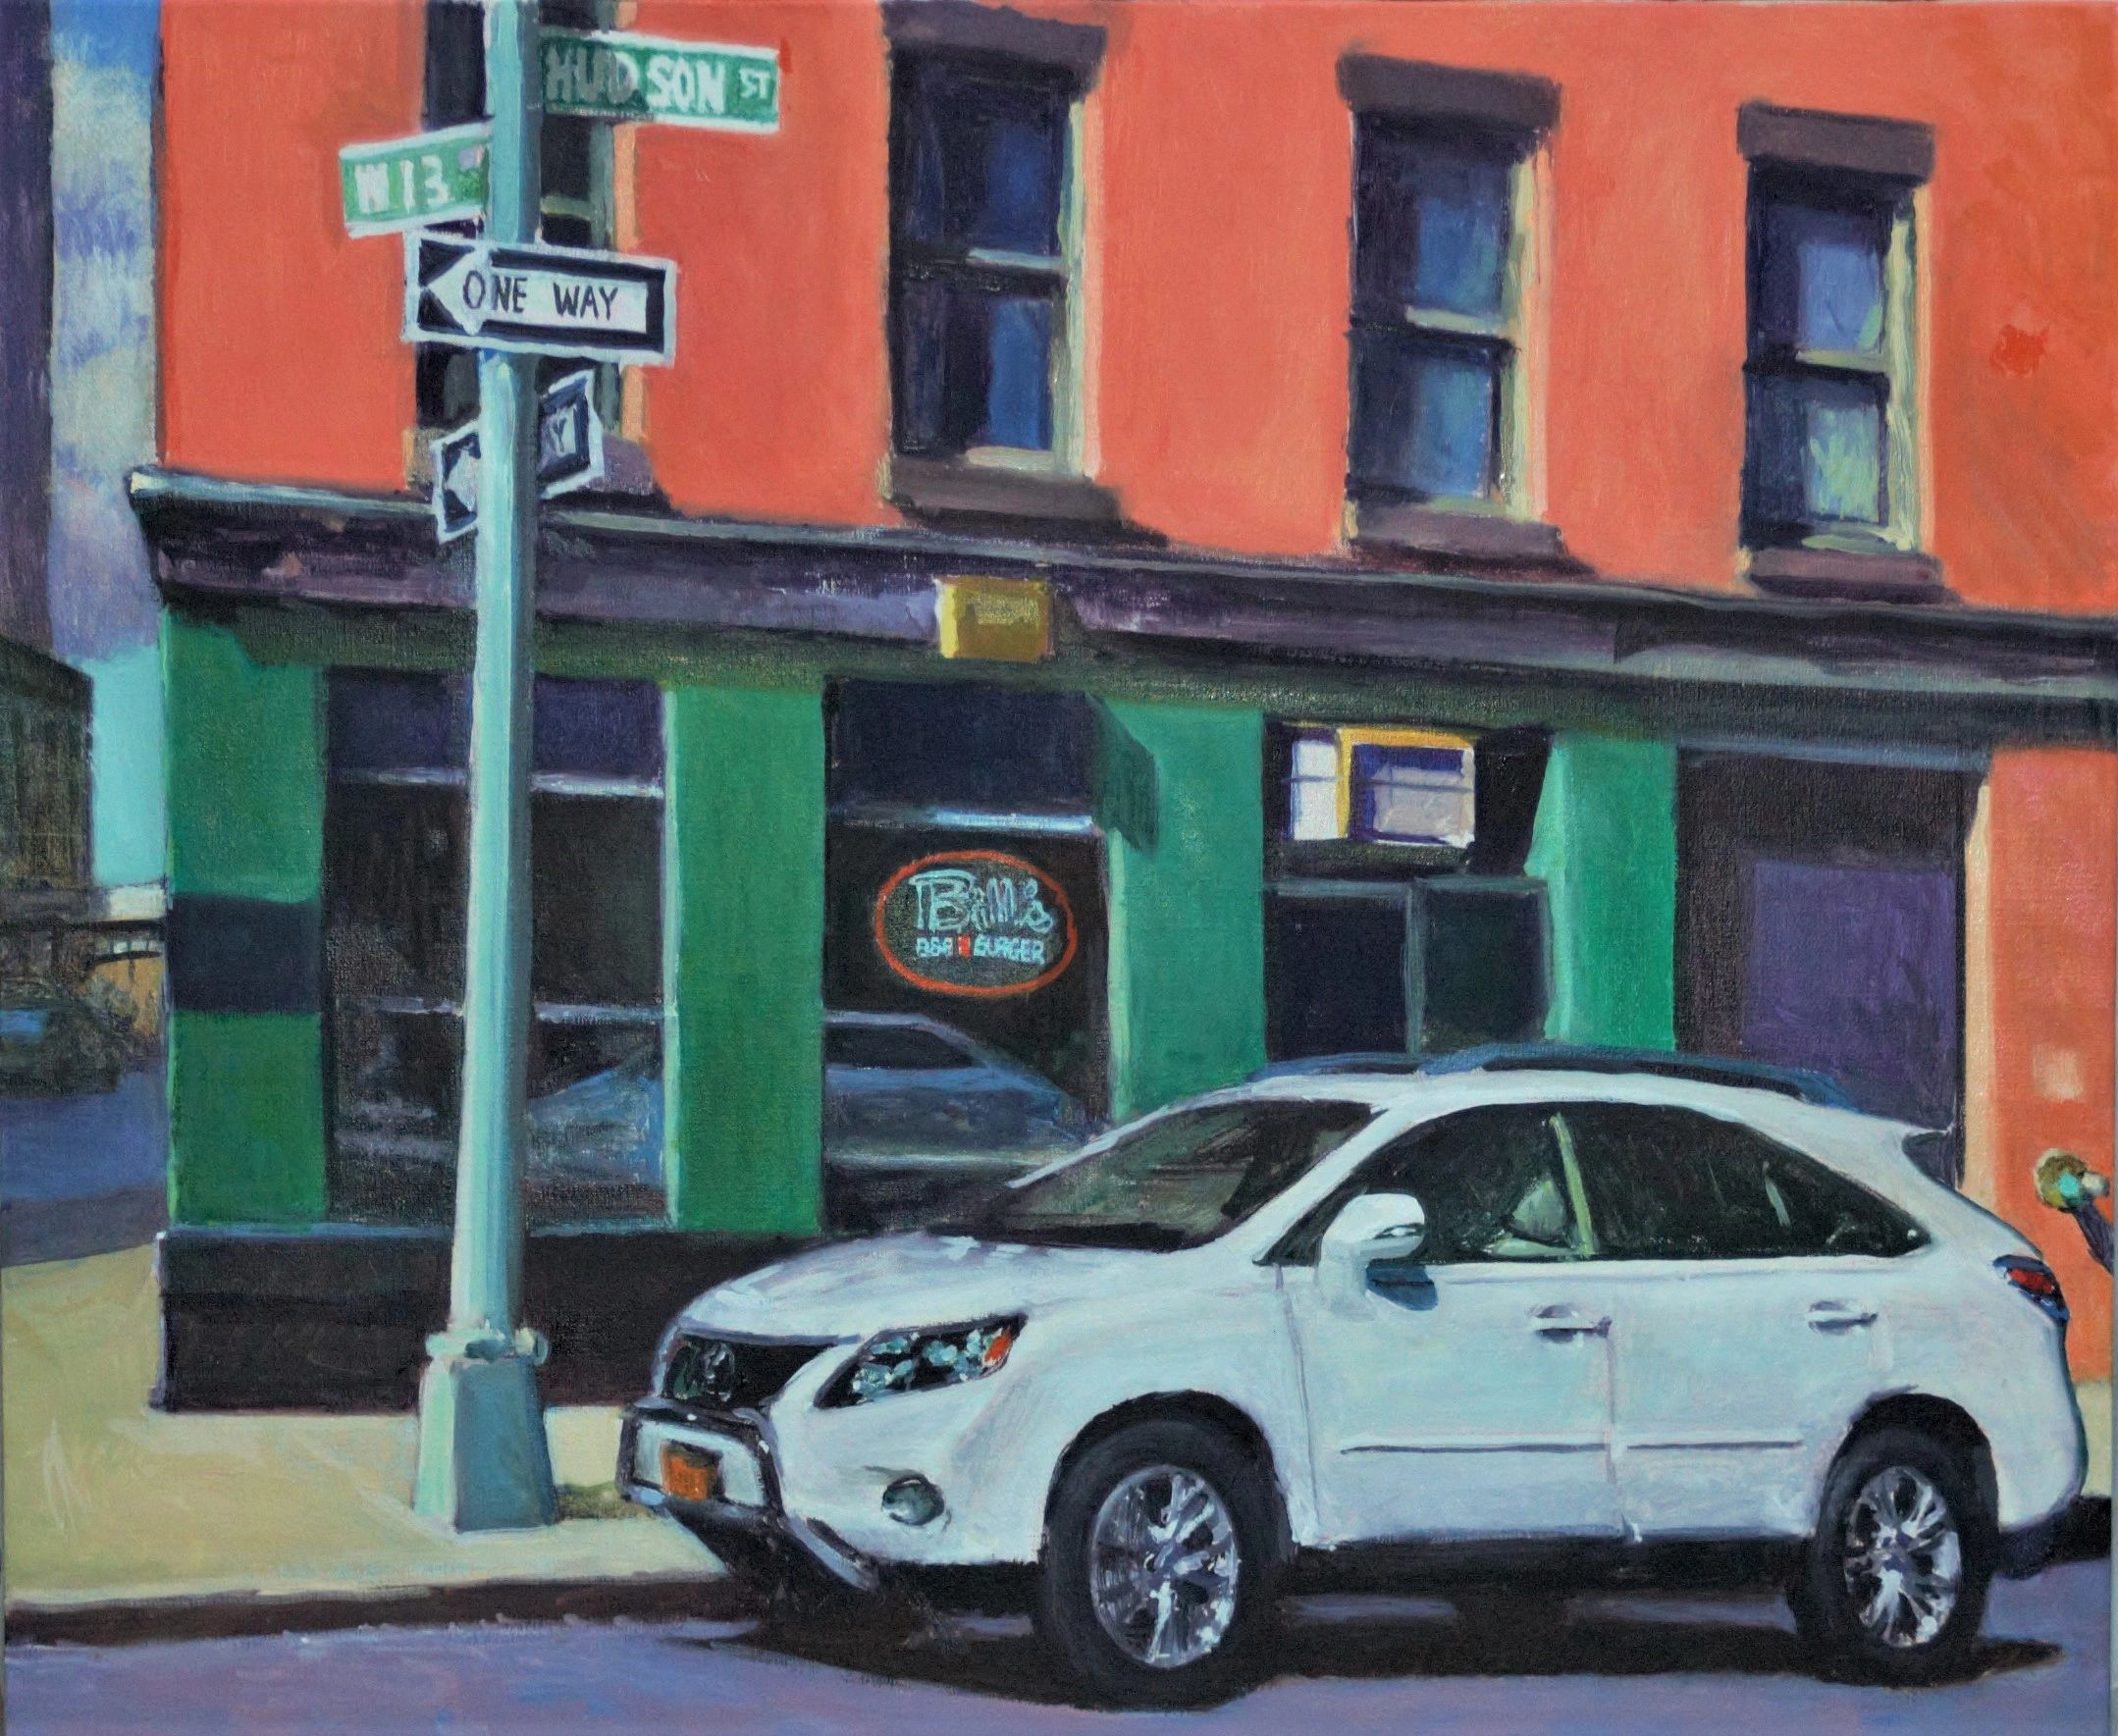 "{""blocks"":[{""key"":""775tj"",""text"":""Lexus in Meatpacking District Oil on canvas 25 X 30 inches"",""type"":""unordered-list-item"",""depth"":0,""inlineStyleRanges"":[{""offset"":0,""length"":58,""style"":""BOLD""}],""entityRanges"":[],""data"":{}}],""entityMap"":{}}"